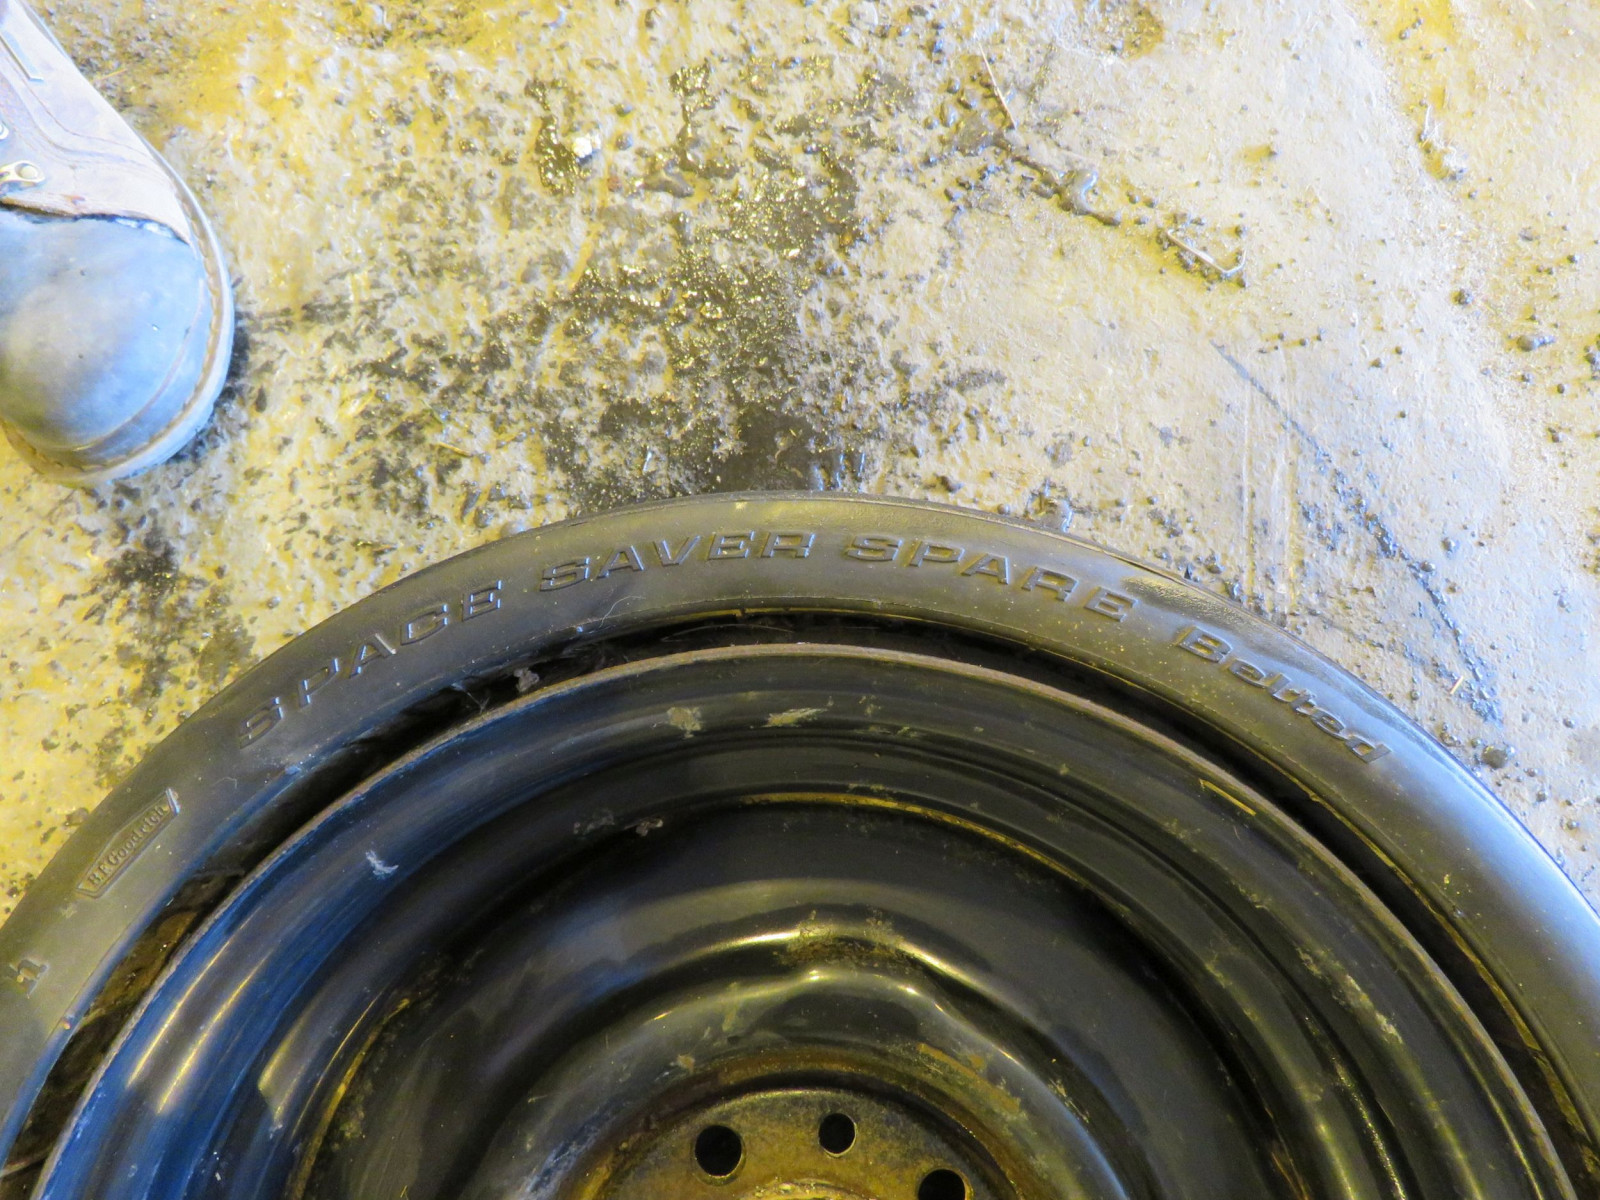 RARE BF Goodrich Collapsible Spare Tire for 426 HEMI CUDA, Challenger - Image 5